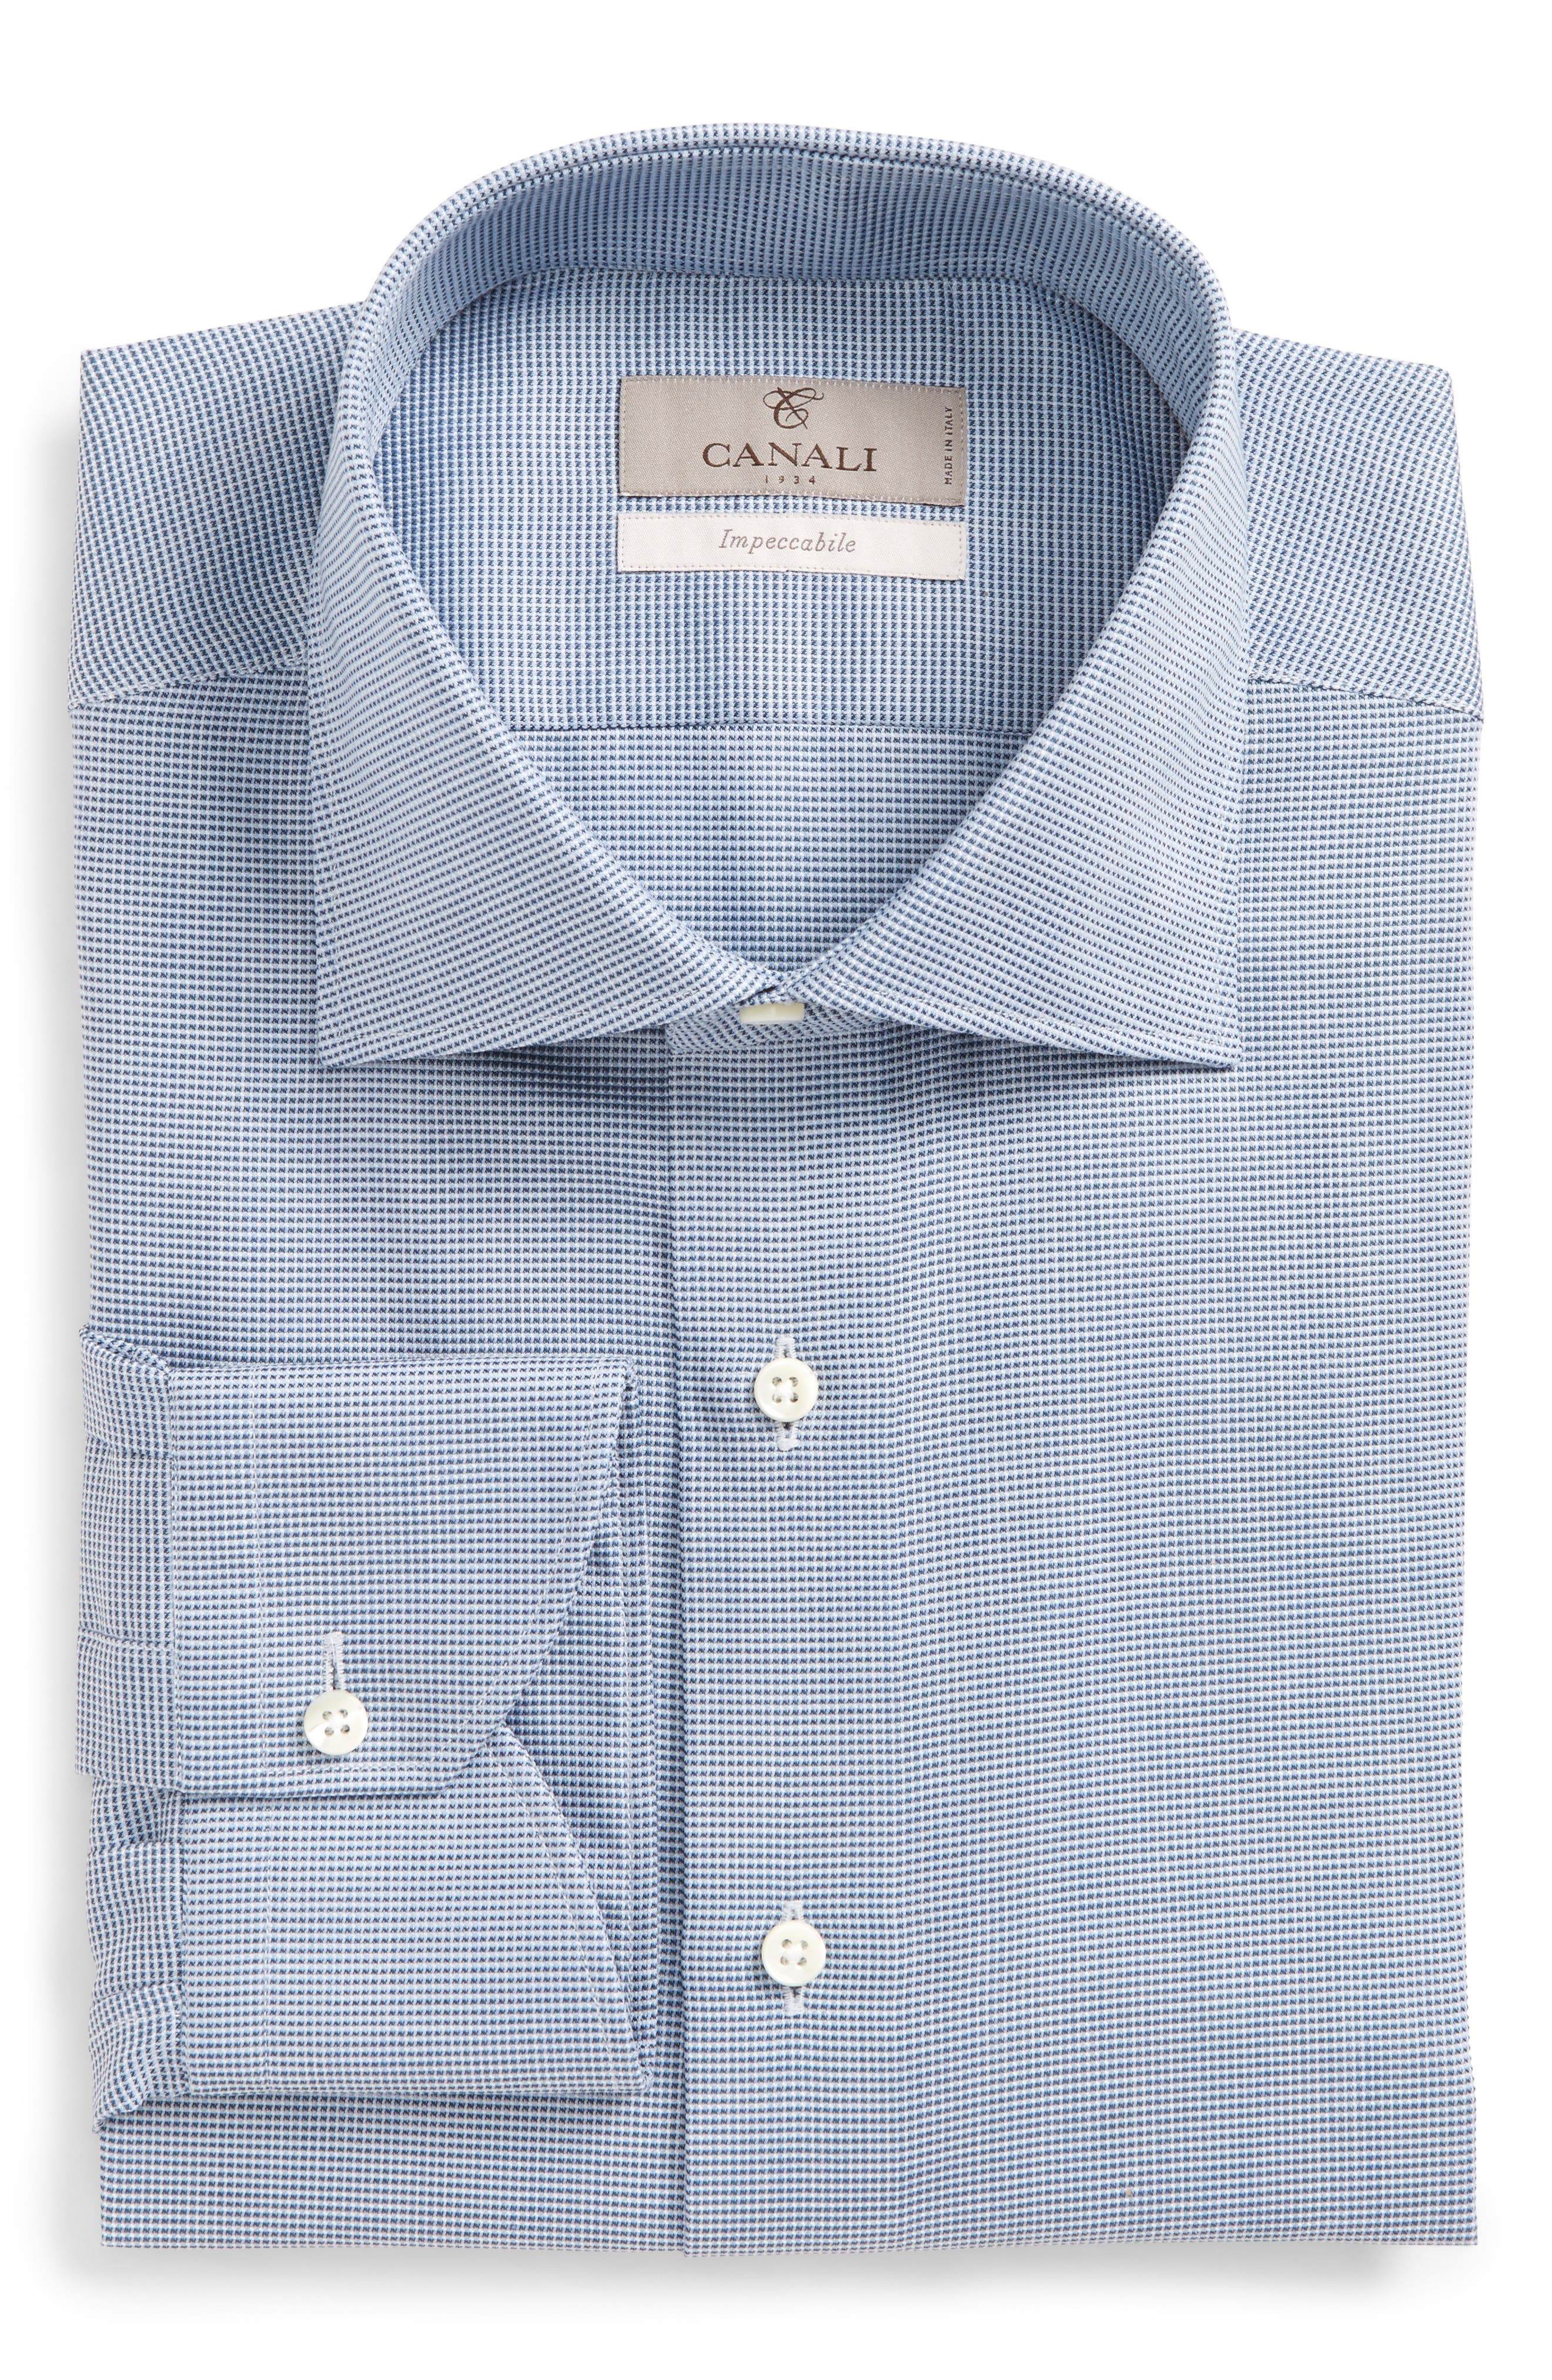 Regular Fit Solid Dress Shirt,                         Main,                         color, Blue